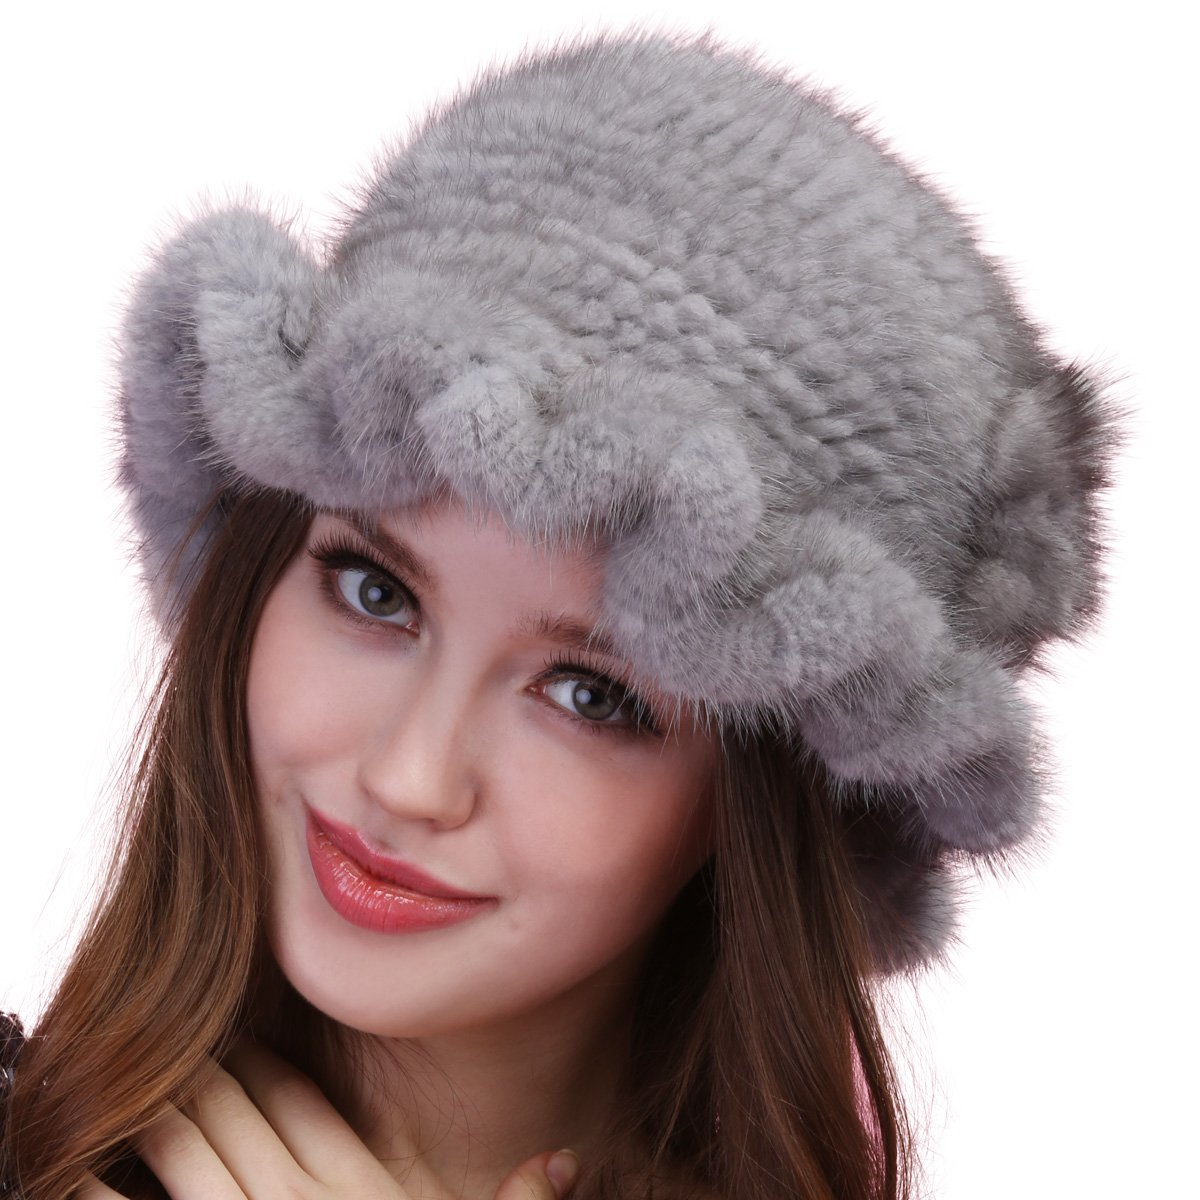 Mandy's Women's Winter Genuine Mink Flower Fur Caps New Snow Show Hats Multicolor (one size fit most, light grey)